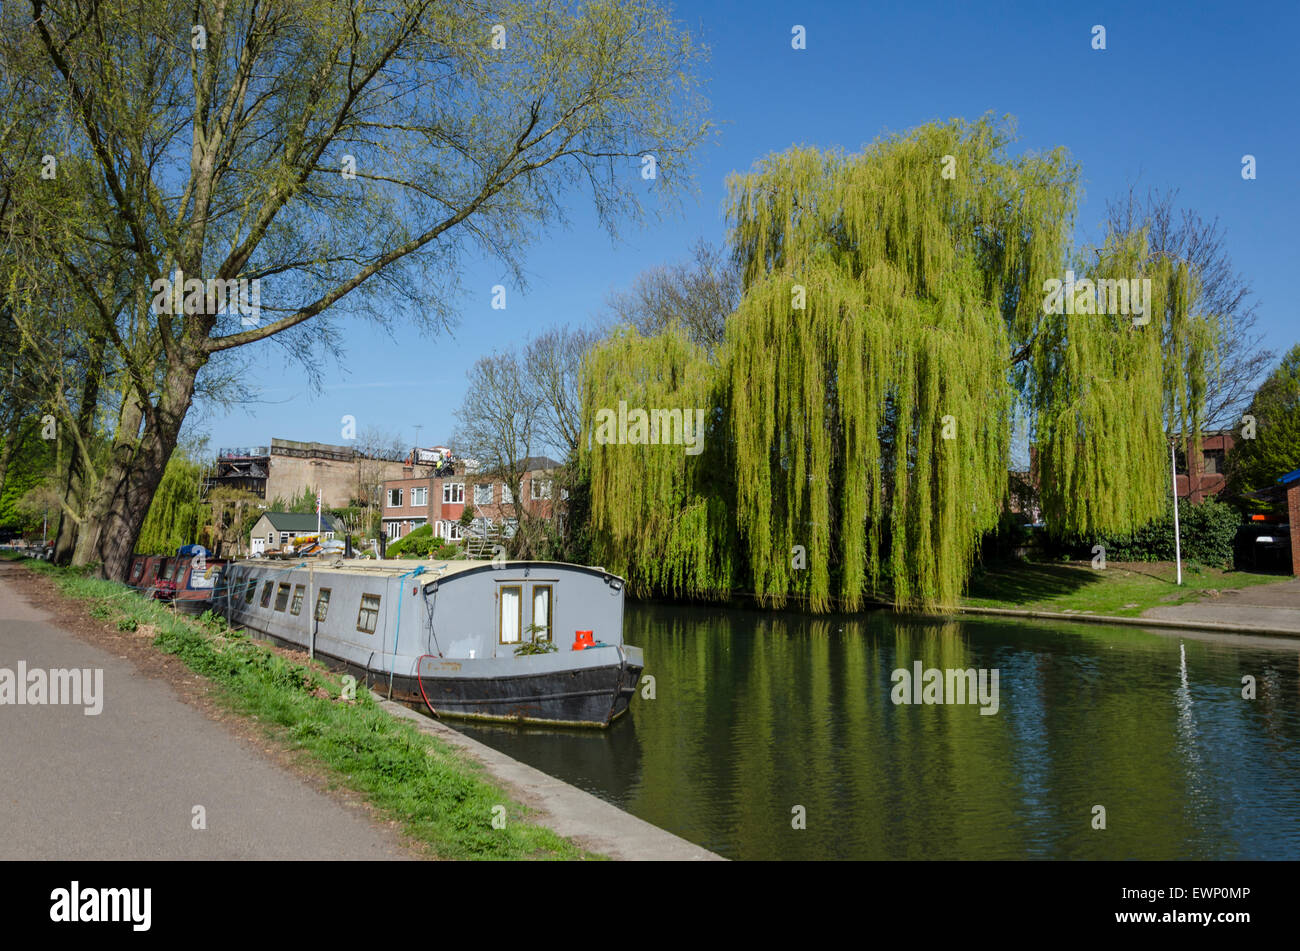 Boat on the River Cam, Cambridge, UK - Stock Image